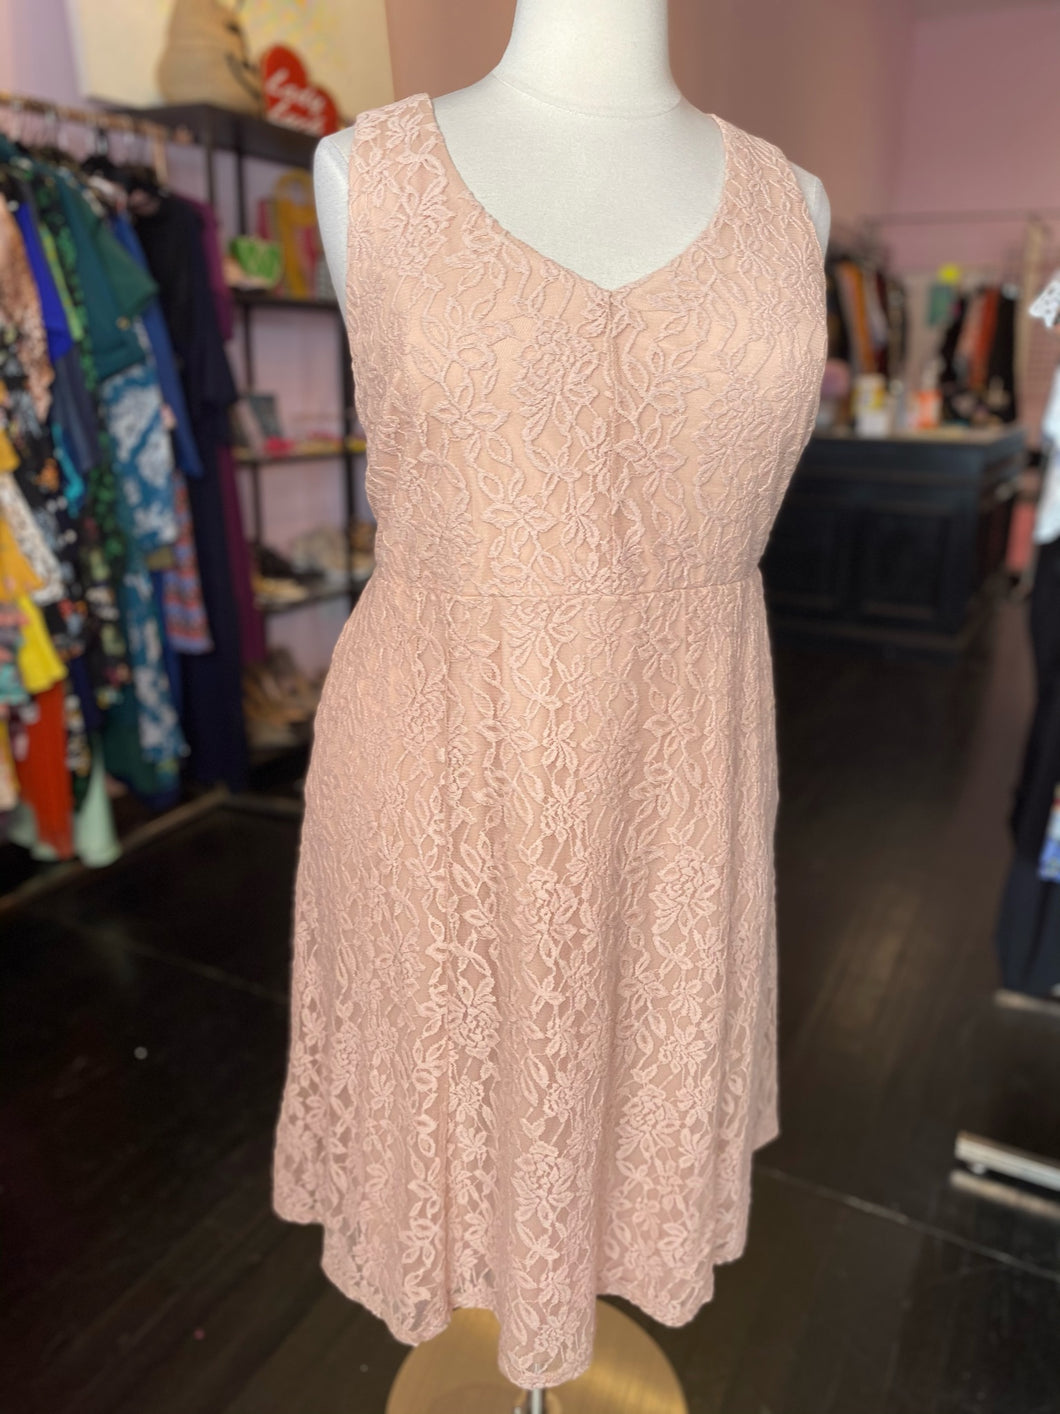 Light Pink Floral Lace Overlay Midi Dress, Torrid Size 3